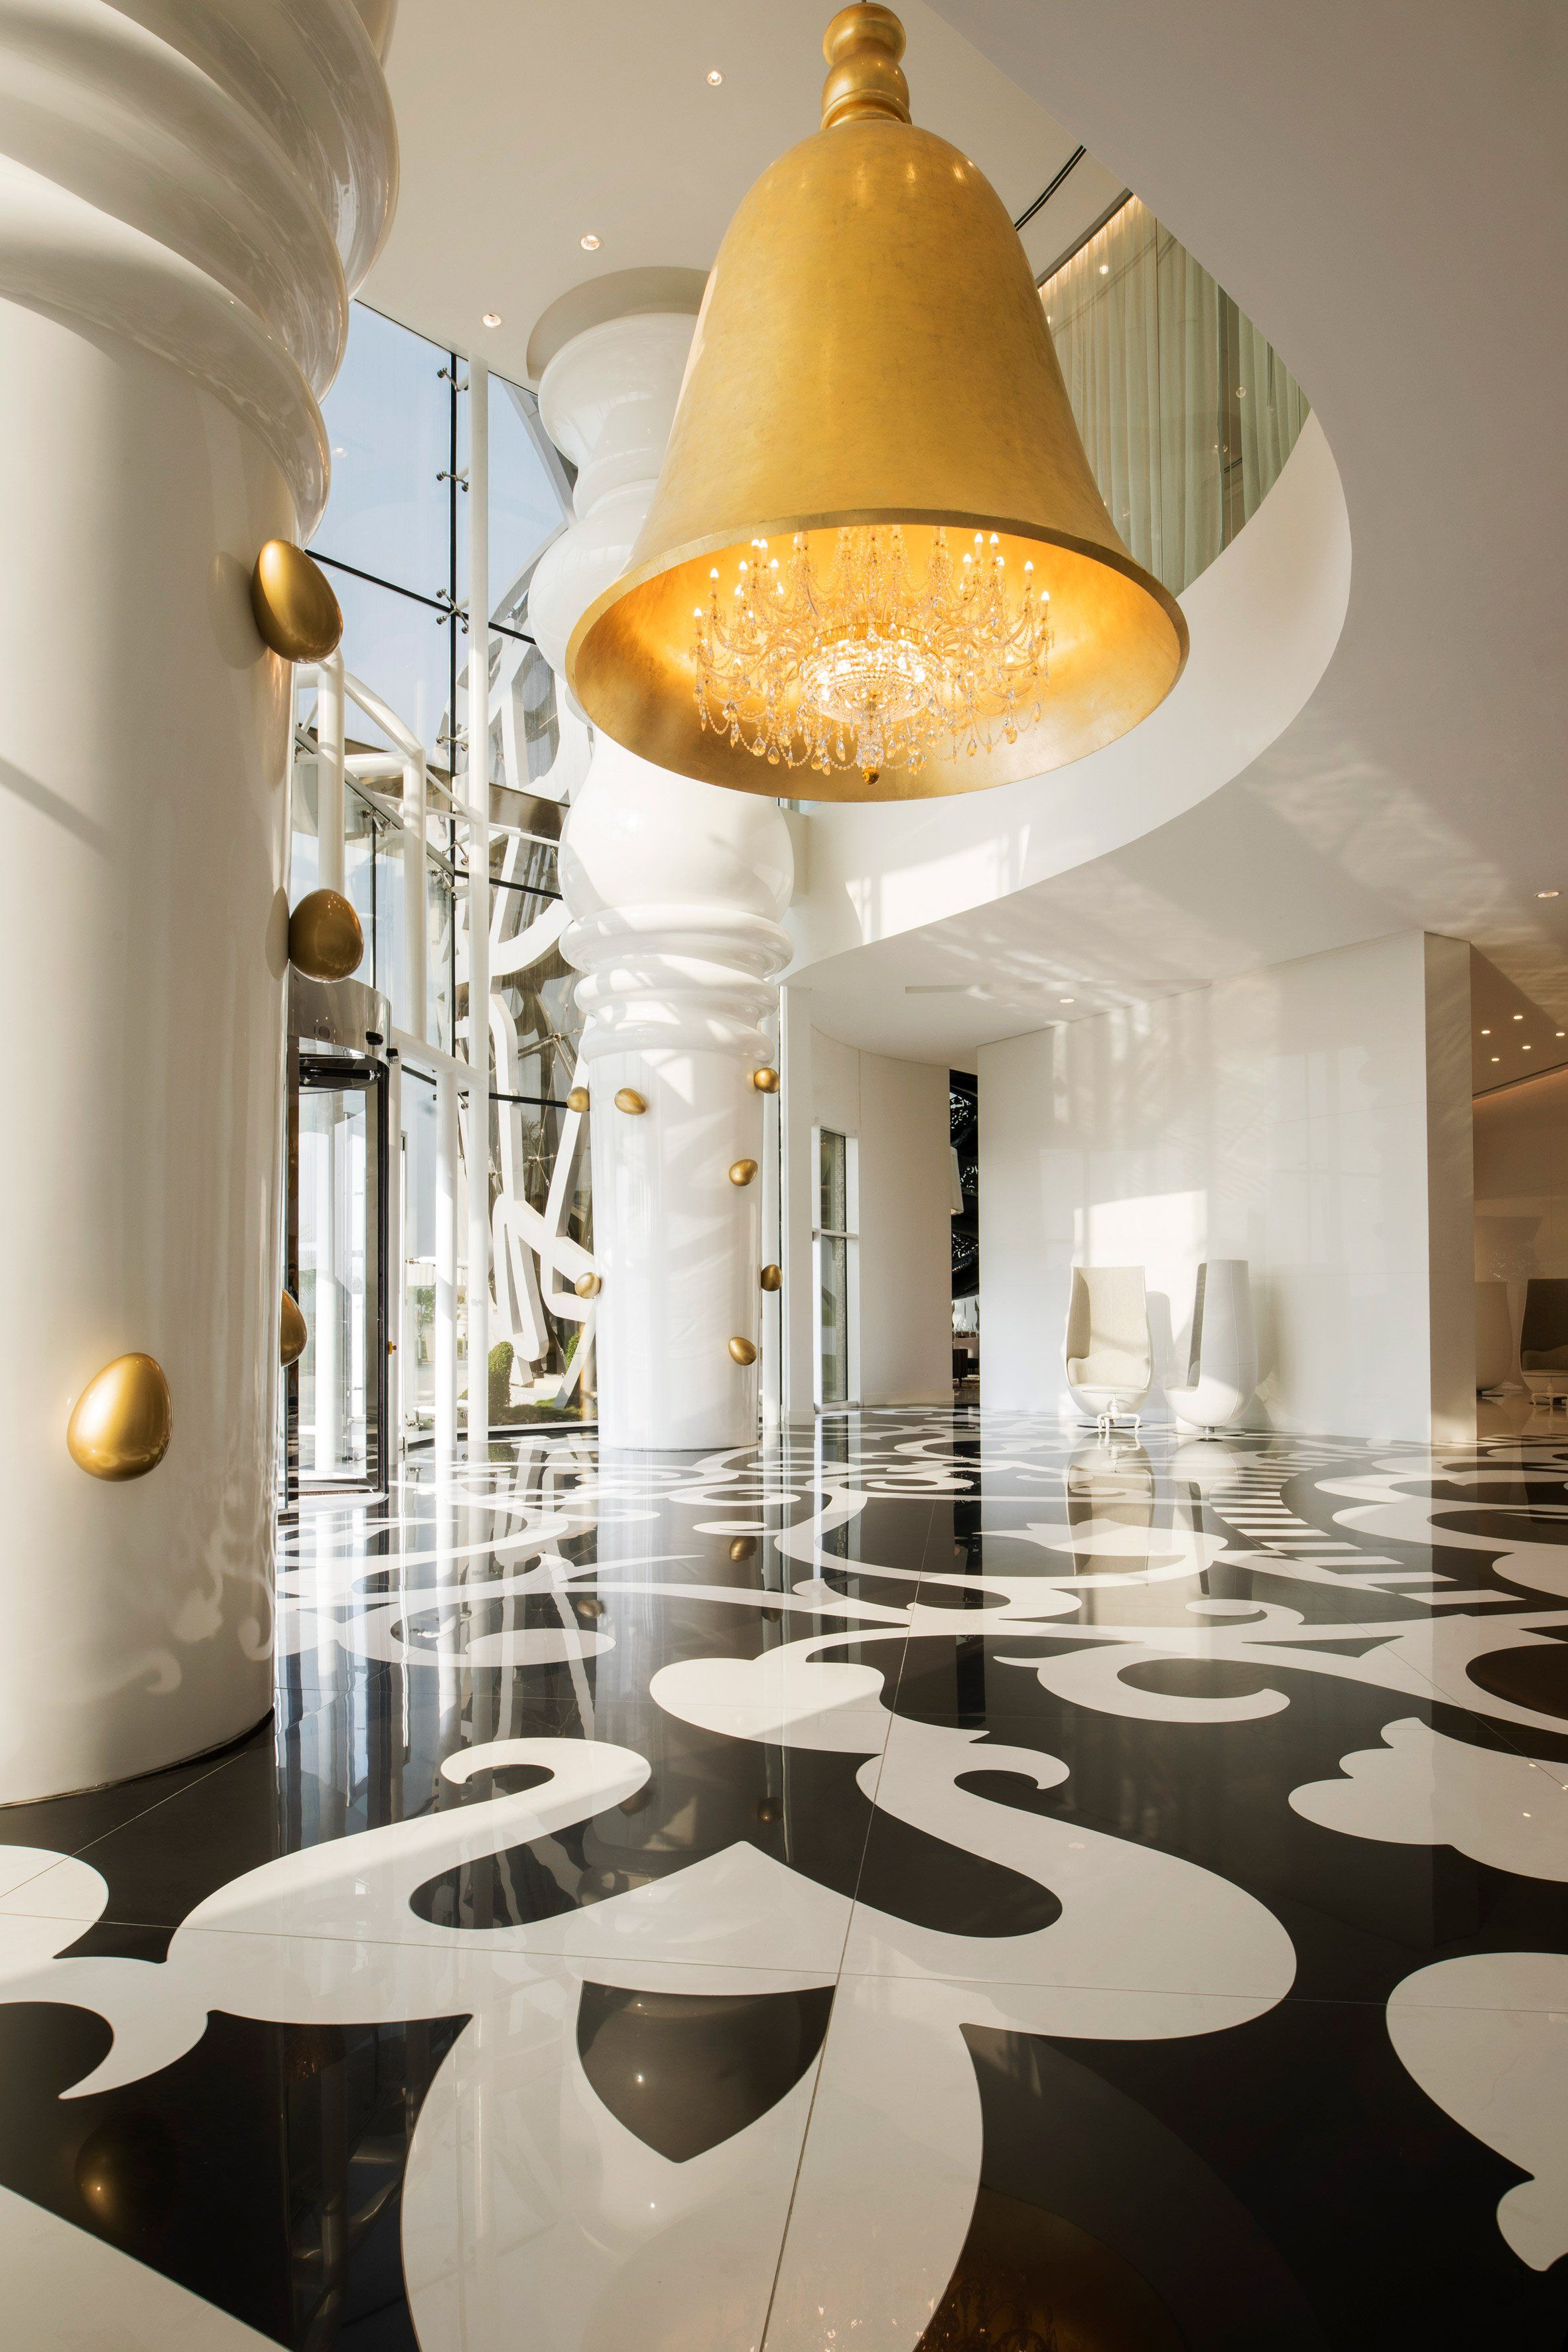 Marcel Wanders Uses Mismatched Patterns And Oversized Furnishings